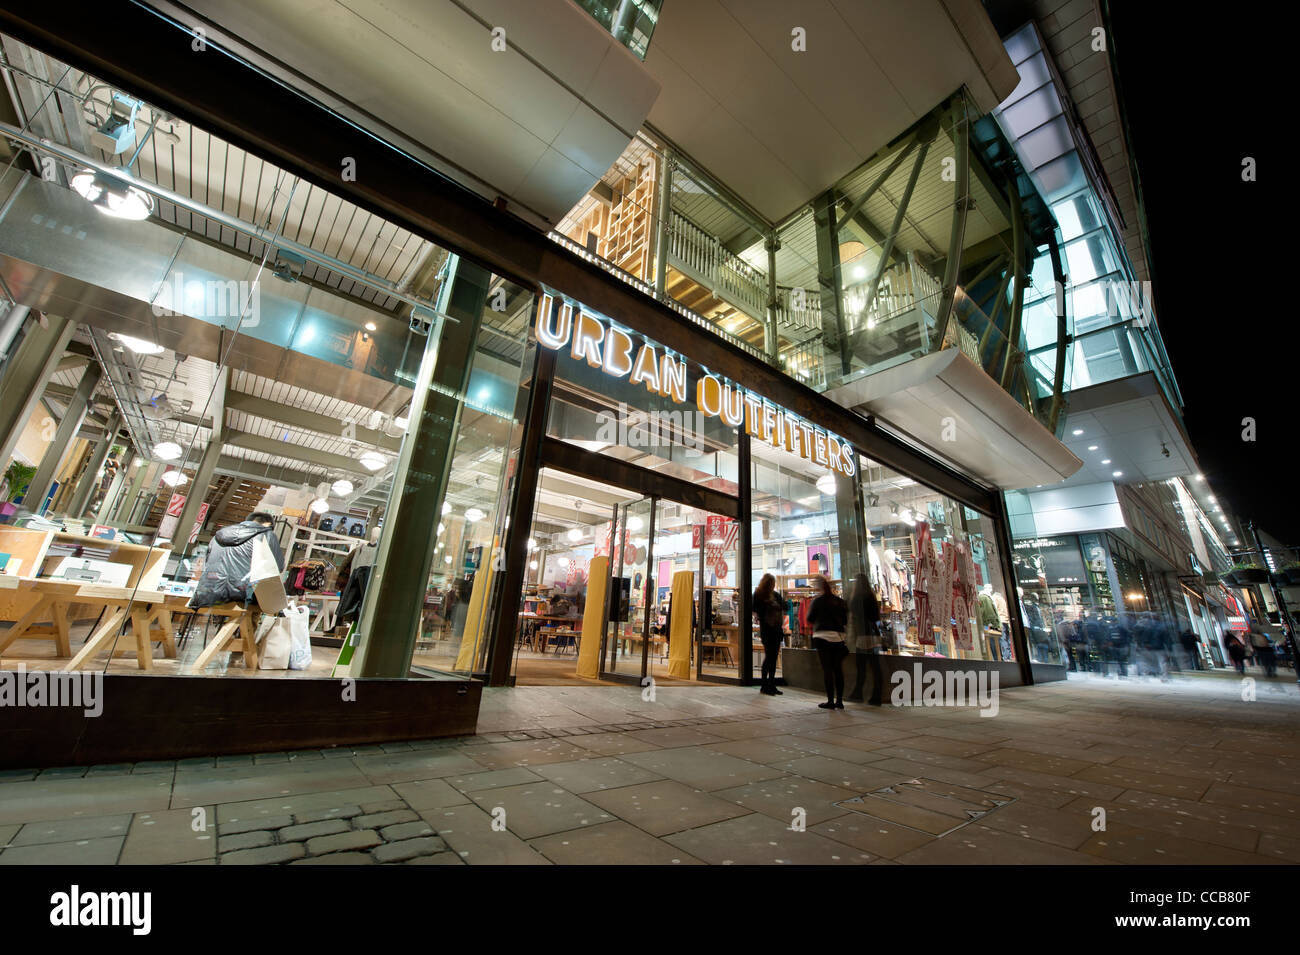 The High Street clothing shop ,Urban Outfitters, located on Market Street in Manchester city centre, UK (Editorial - Stock Image